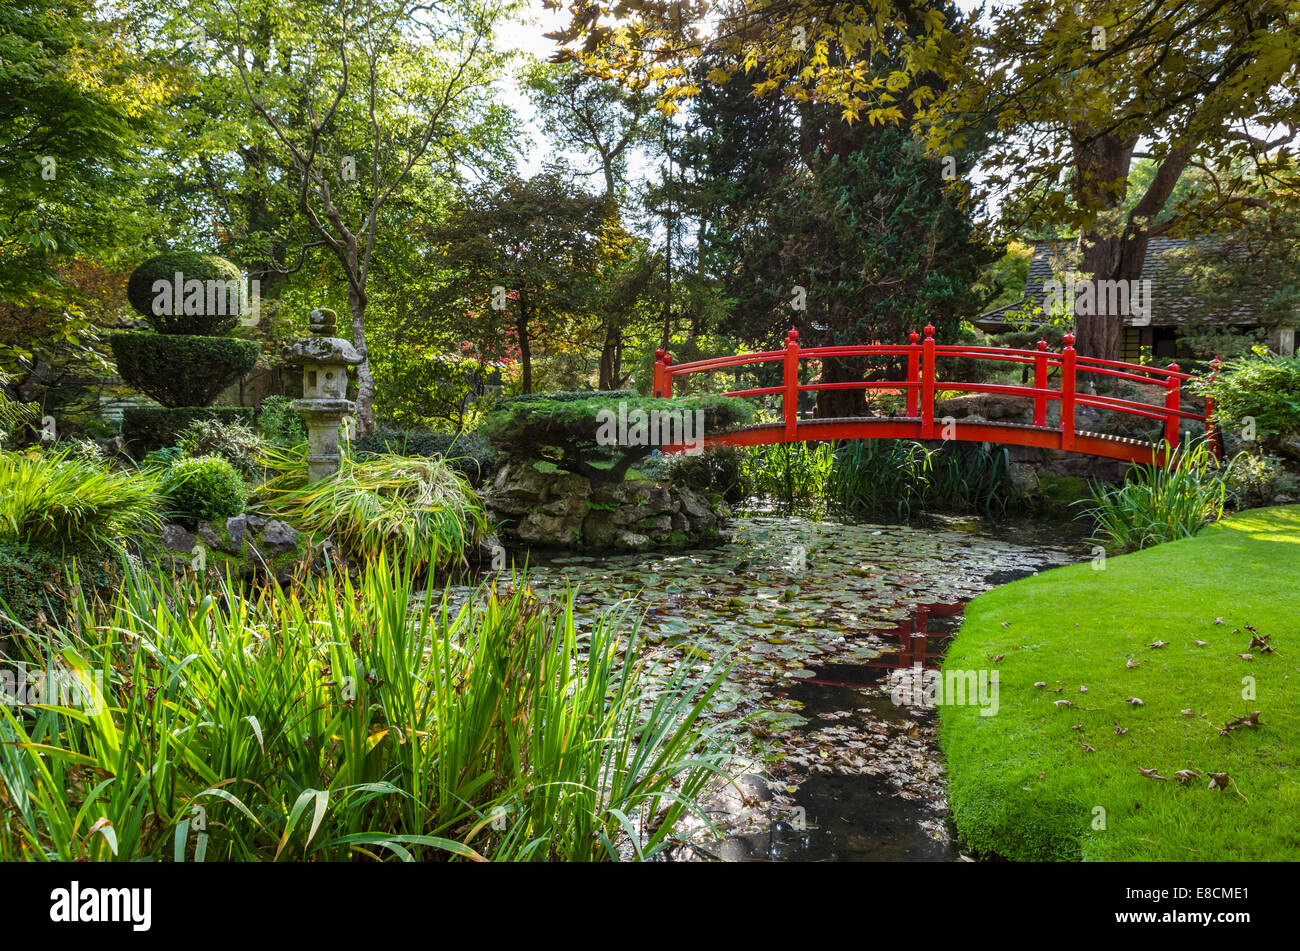 The Japanese Gardens at the Irish National Stud breeding facility, Tully, Kildare, County Kildare, Republic of Ireland - Stock Image